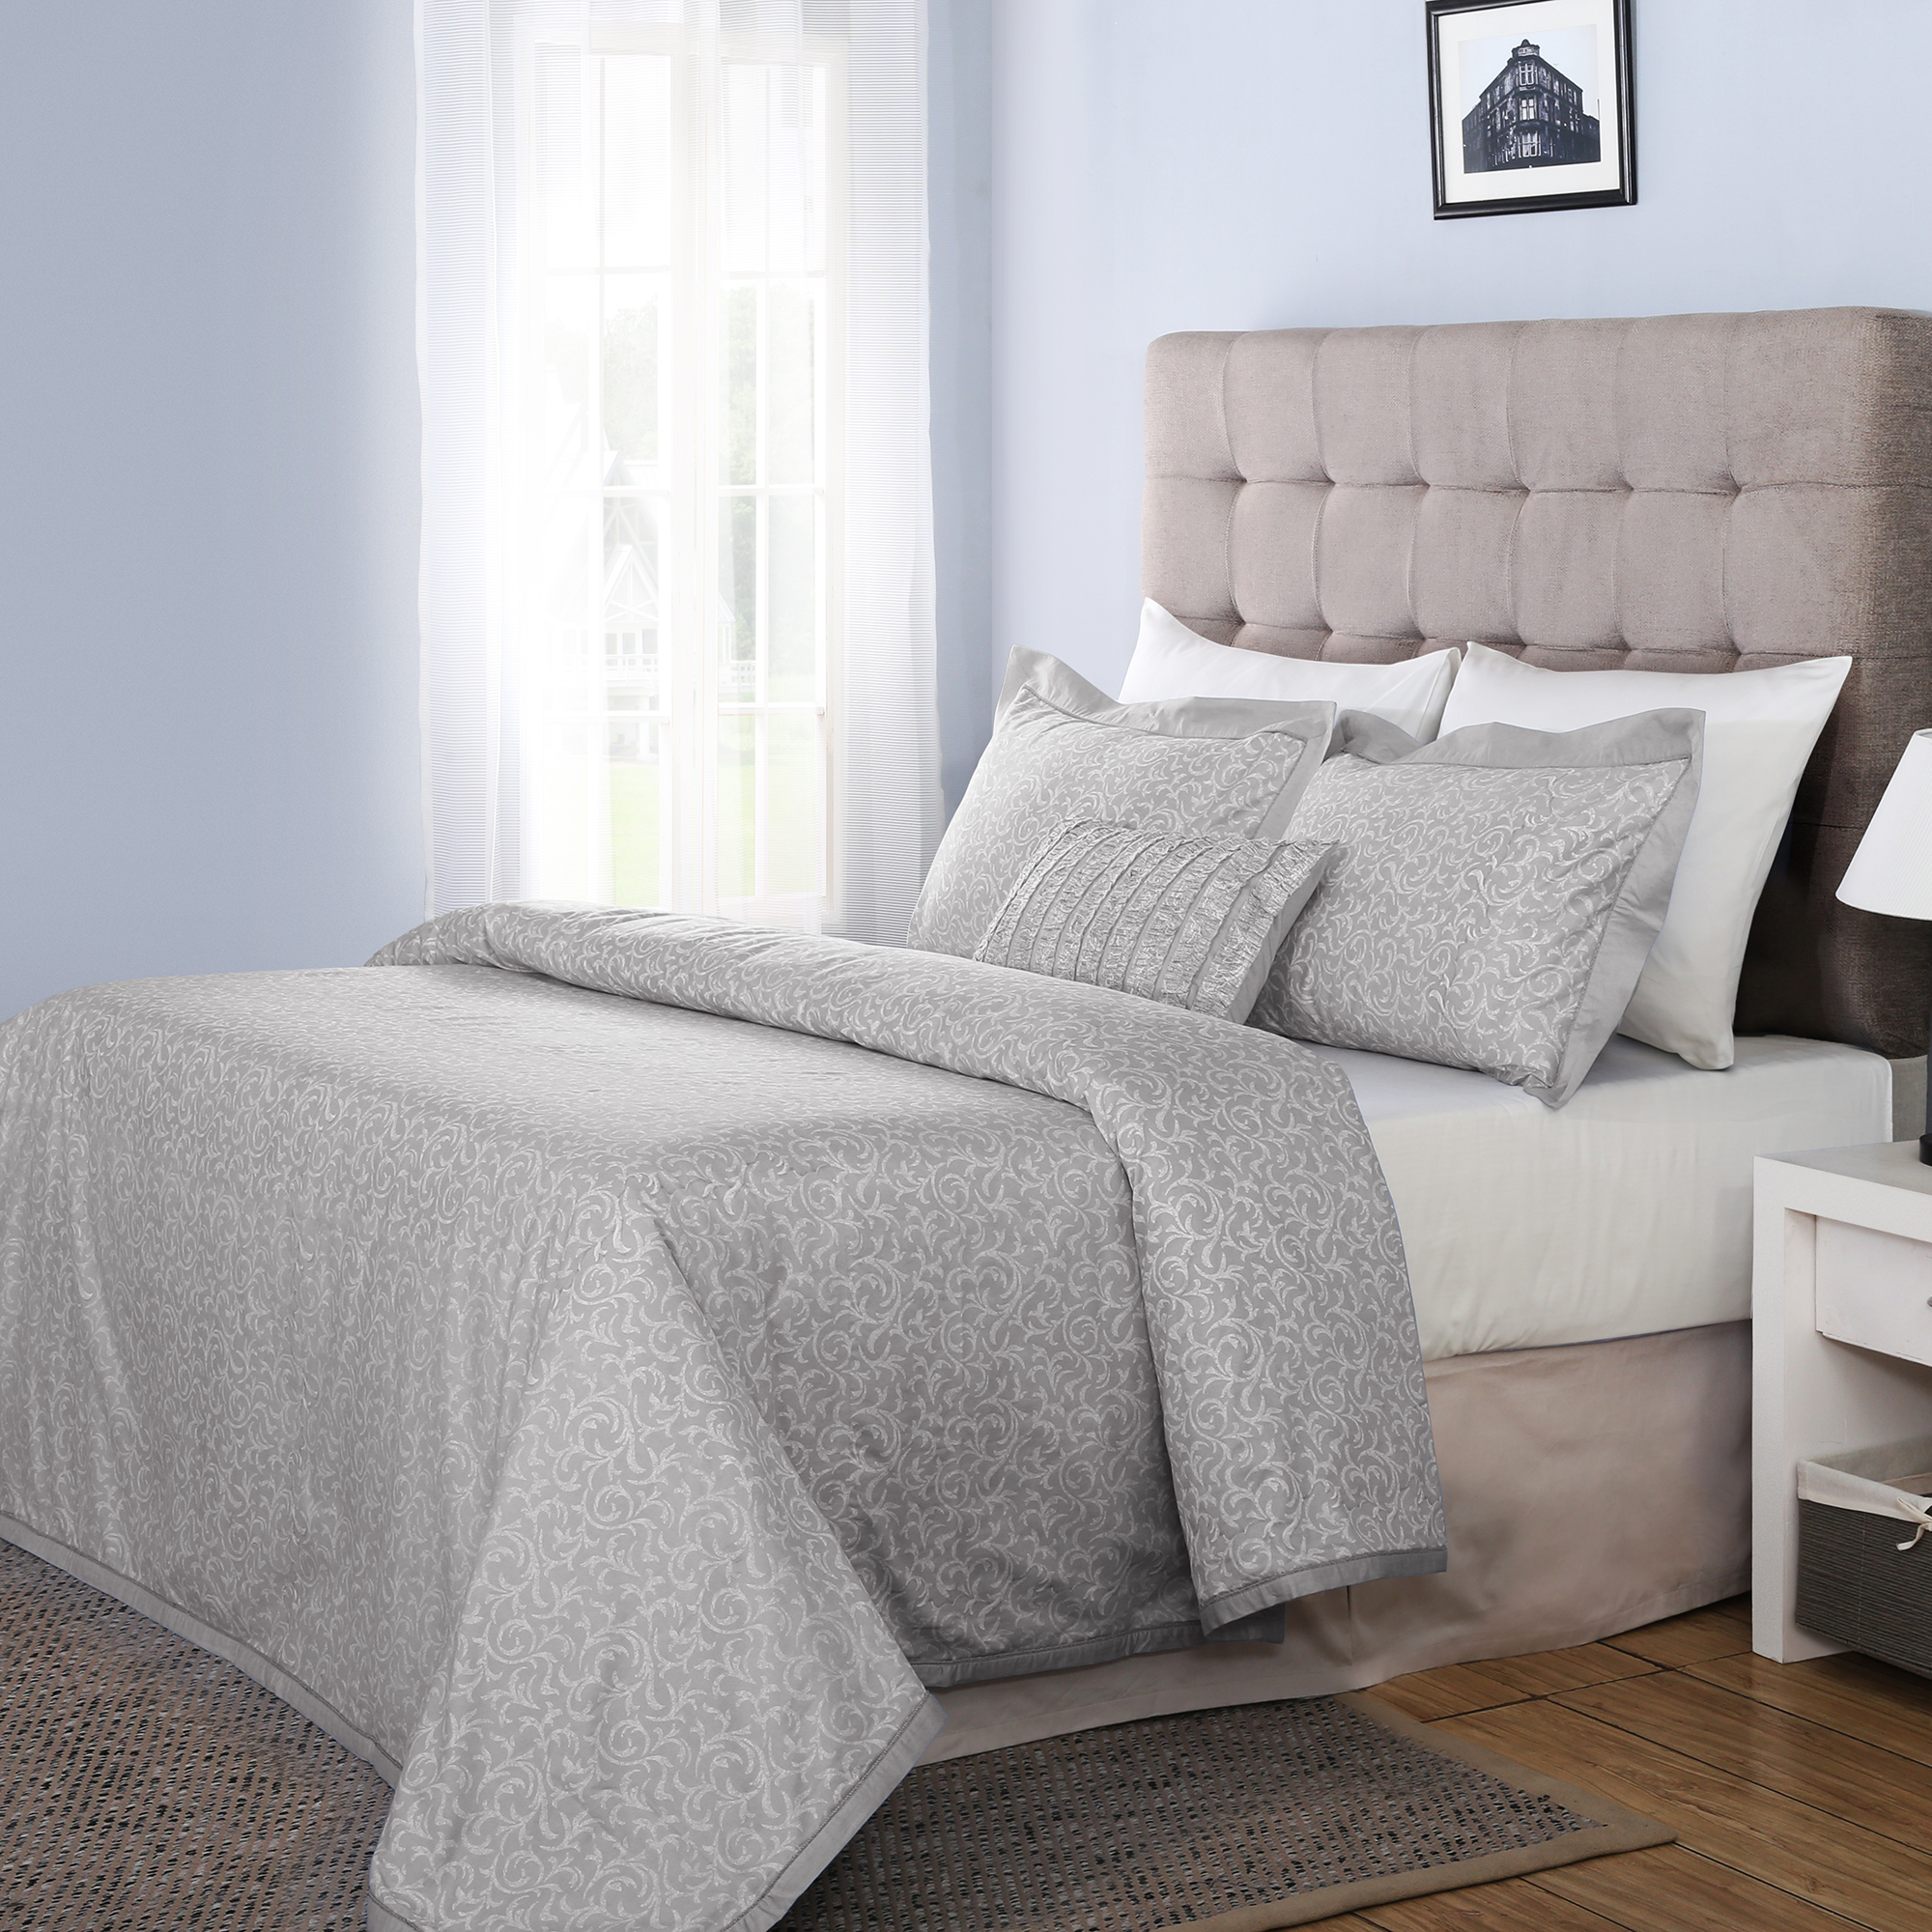 300 TC Classic Essence Cotton King Size Duvet Cover with 2 Pillow Covers in Grey Colour by Maspar